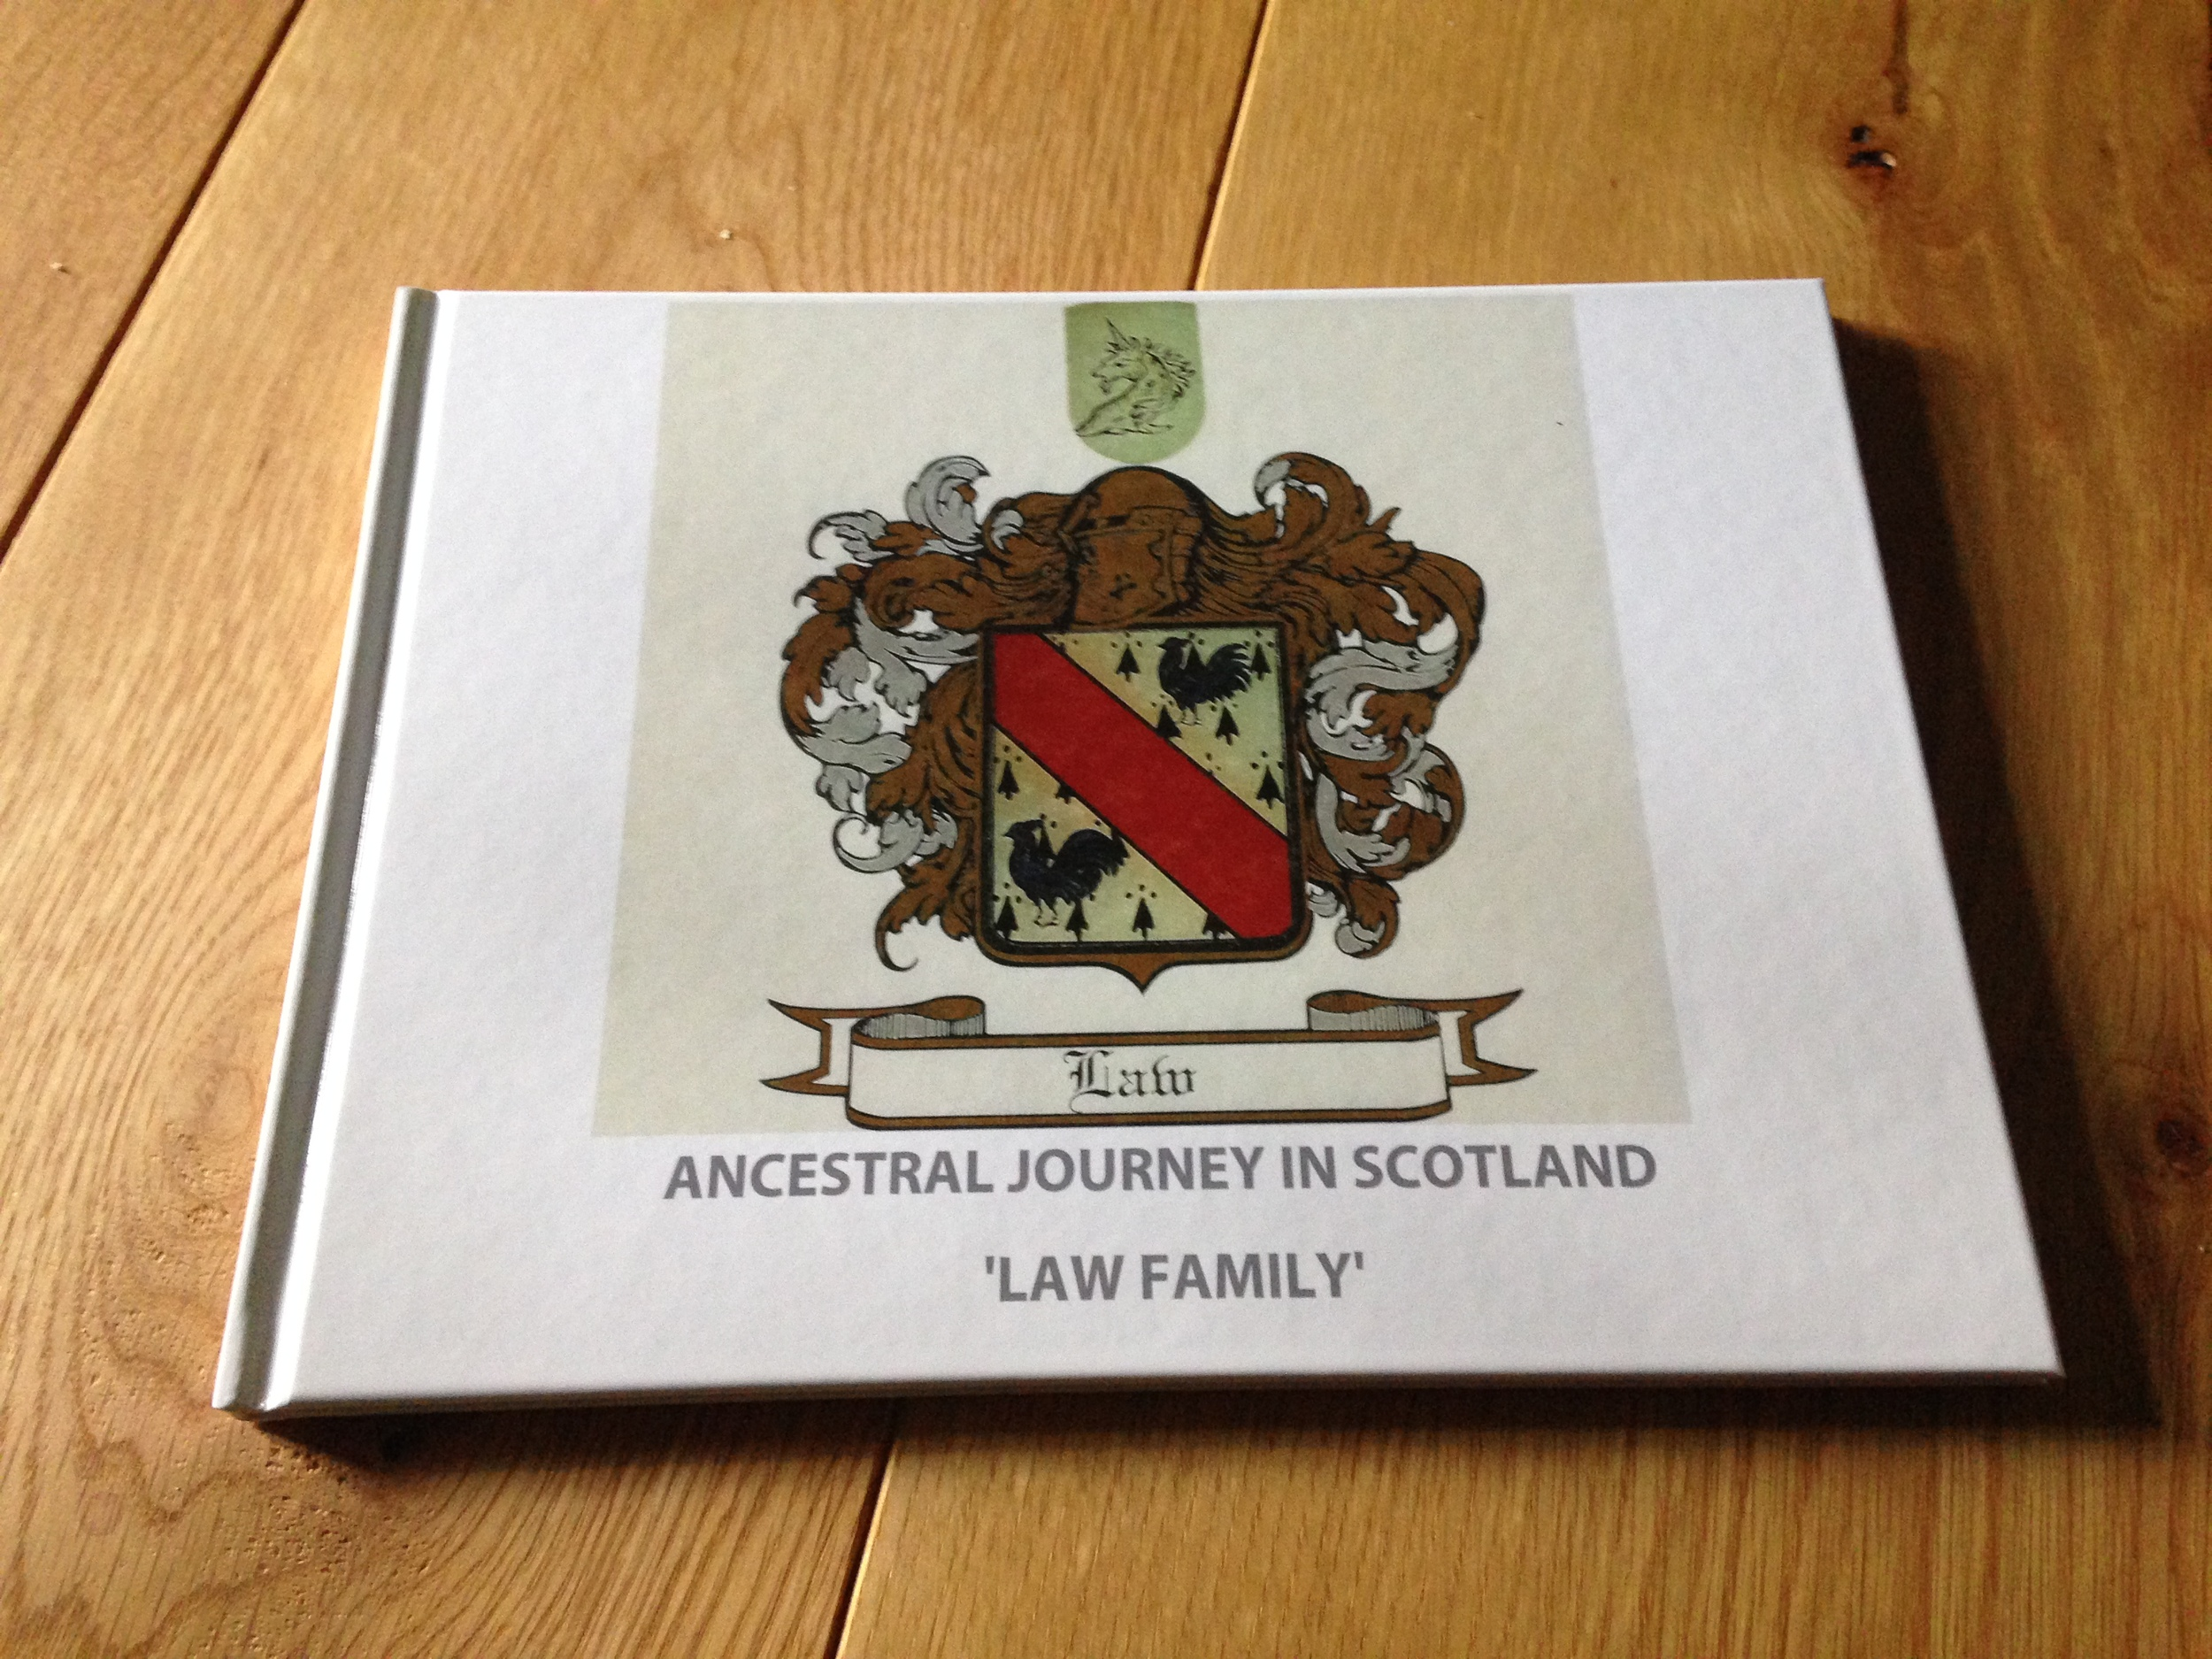 The Photobook of the above Ancestral Journey in Scotland 'Law Family'. Please  Contact  me if you wish to order a Copy.